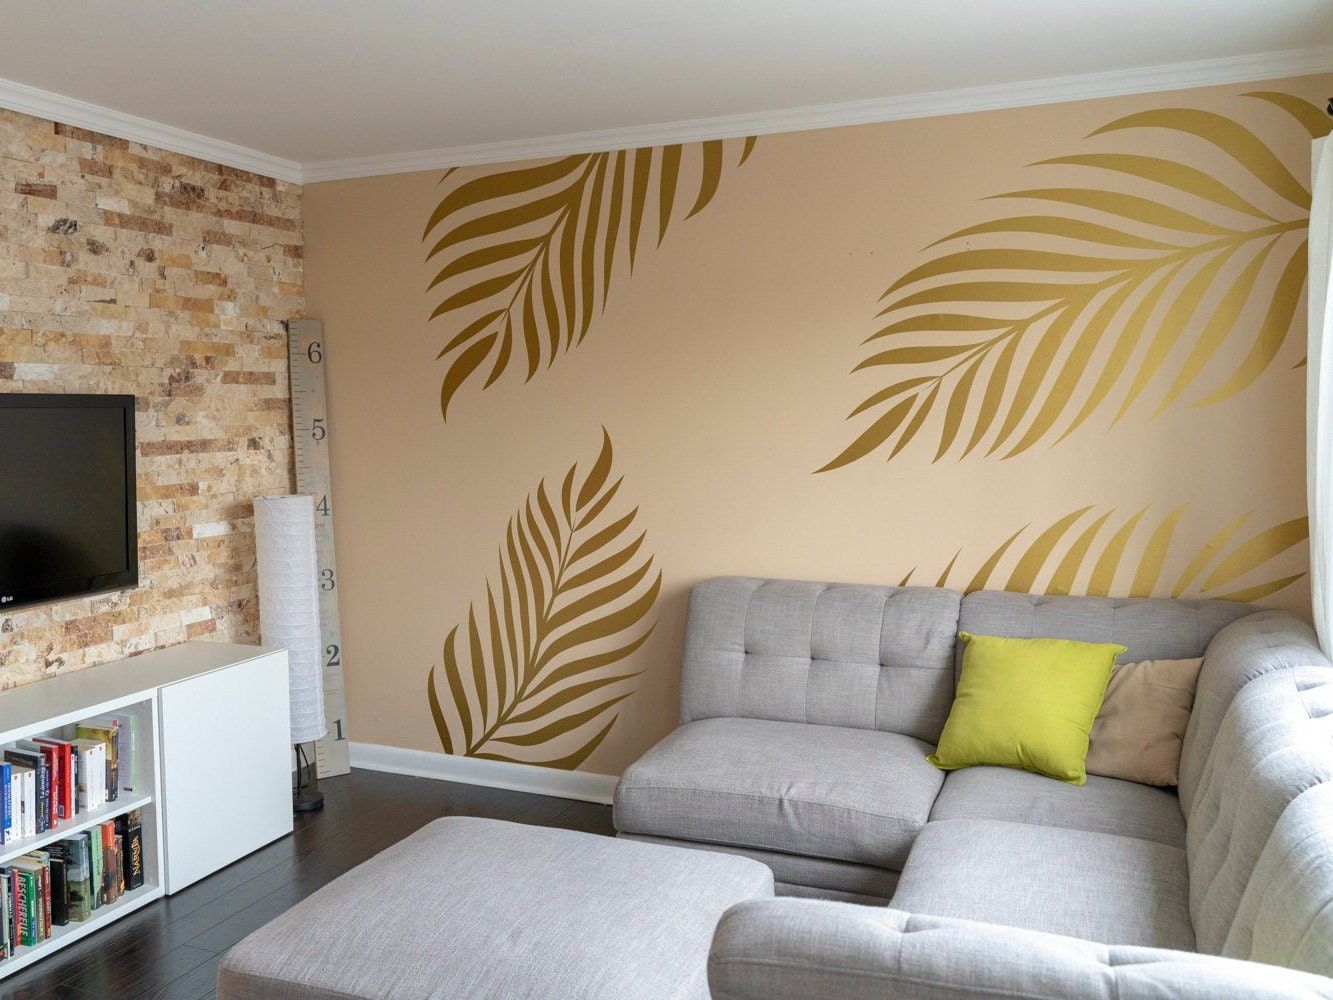 Giant Palm Leaves Home Decor Wall Decal Living Room Pattern